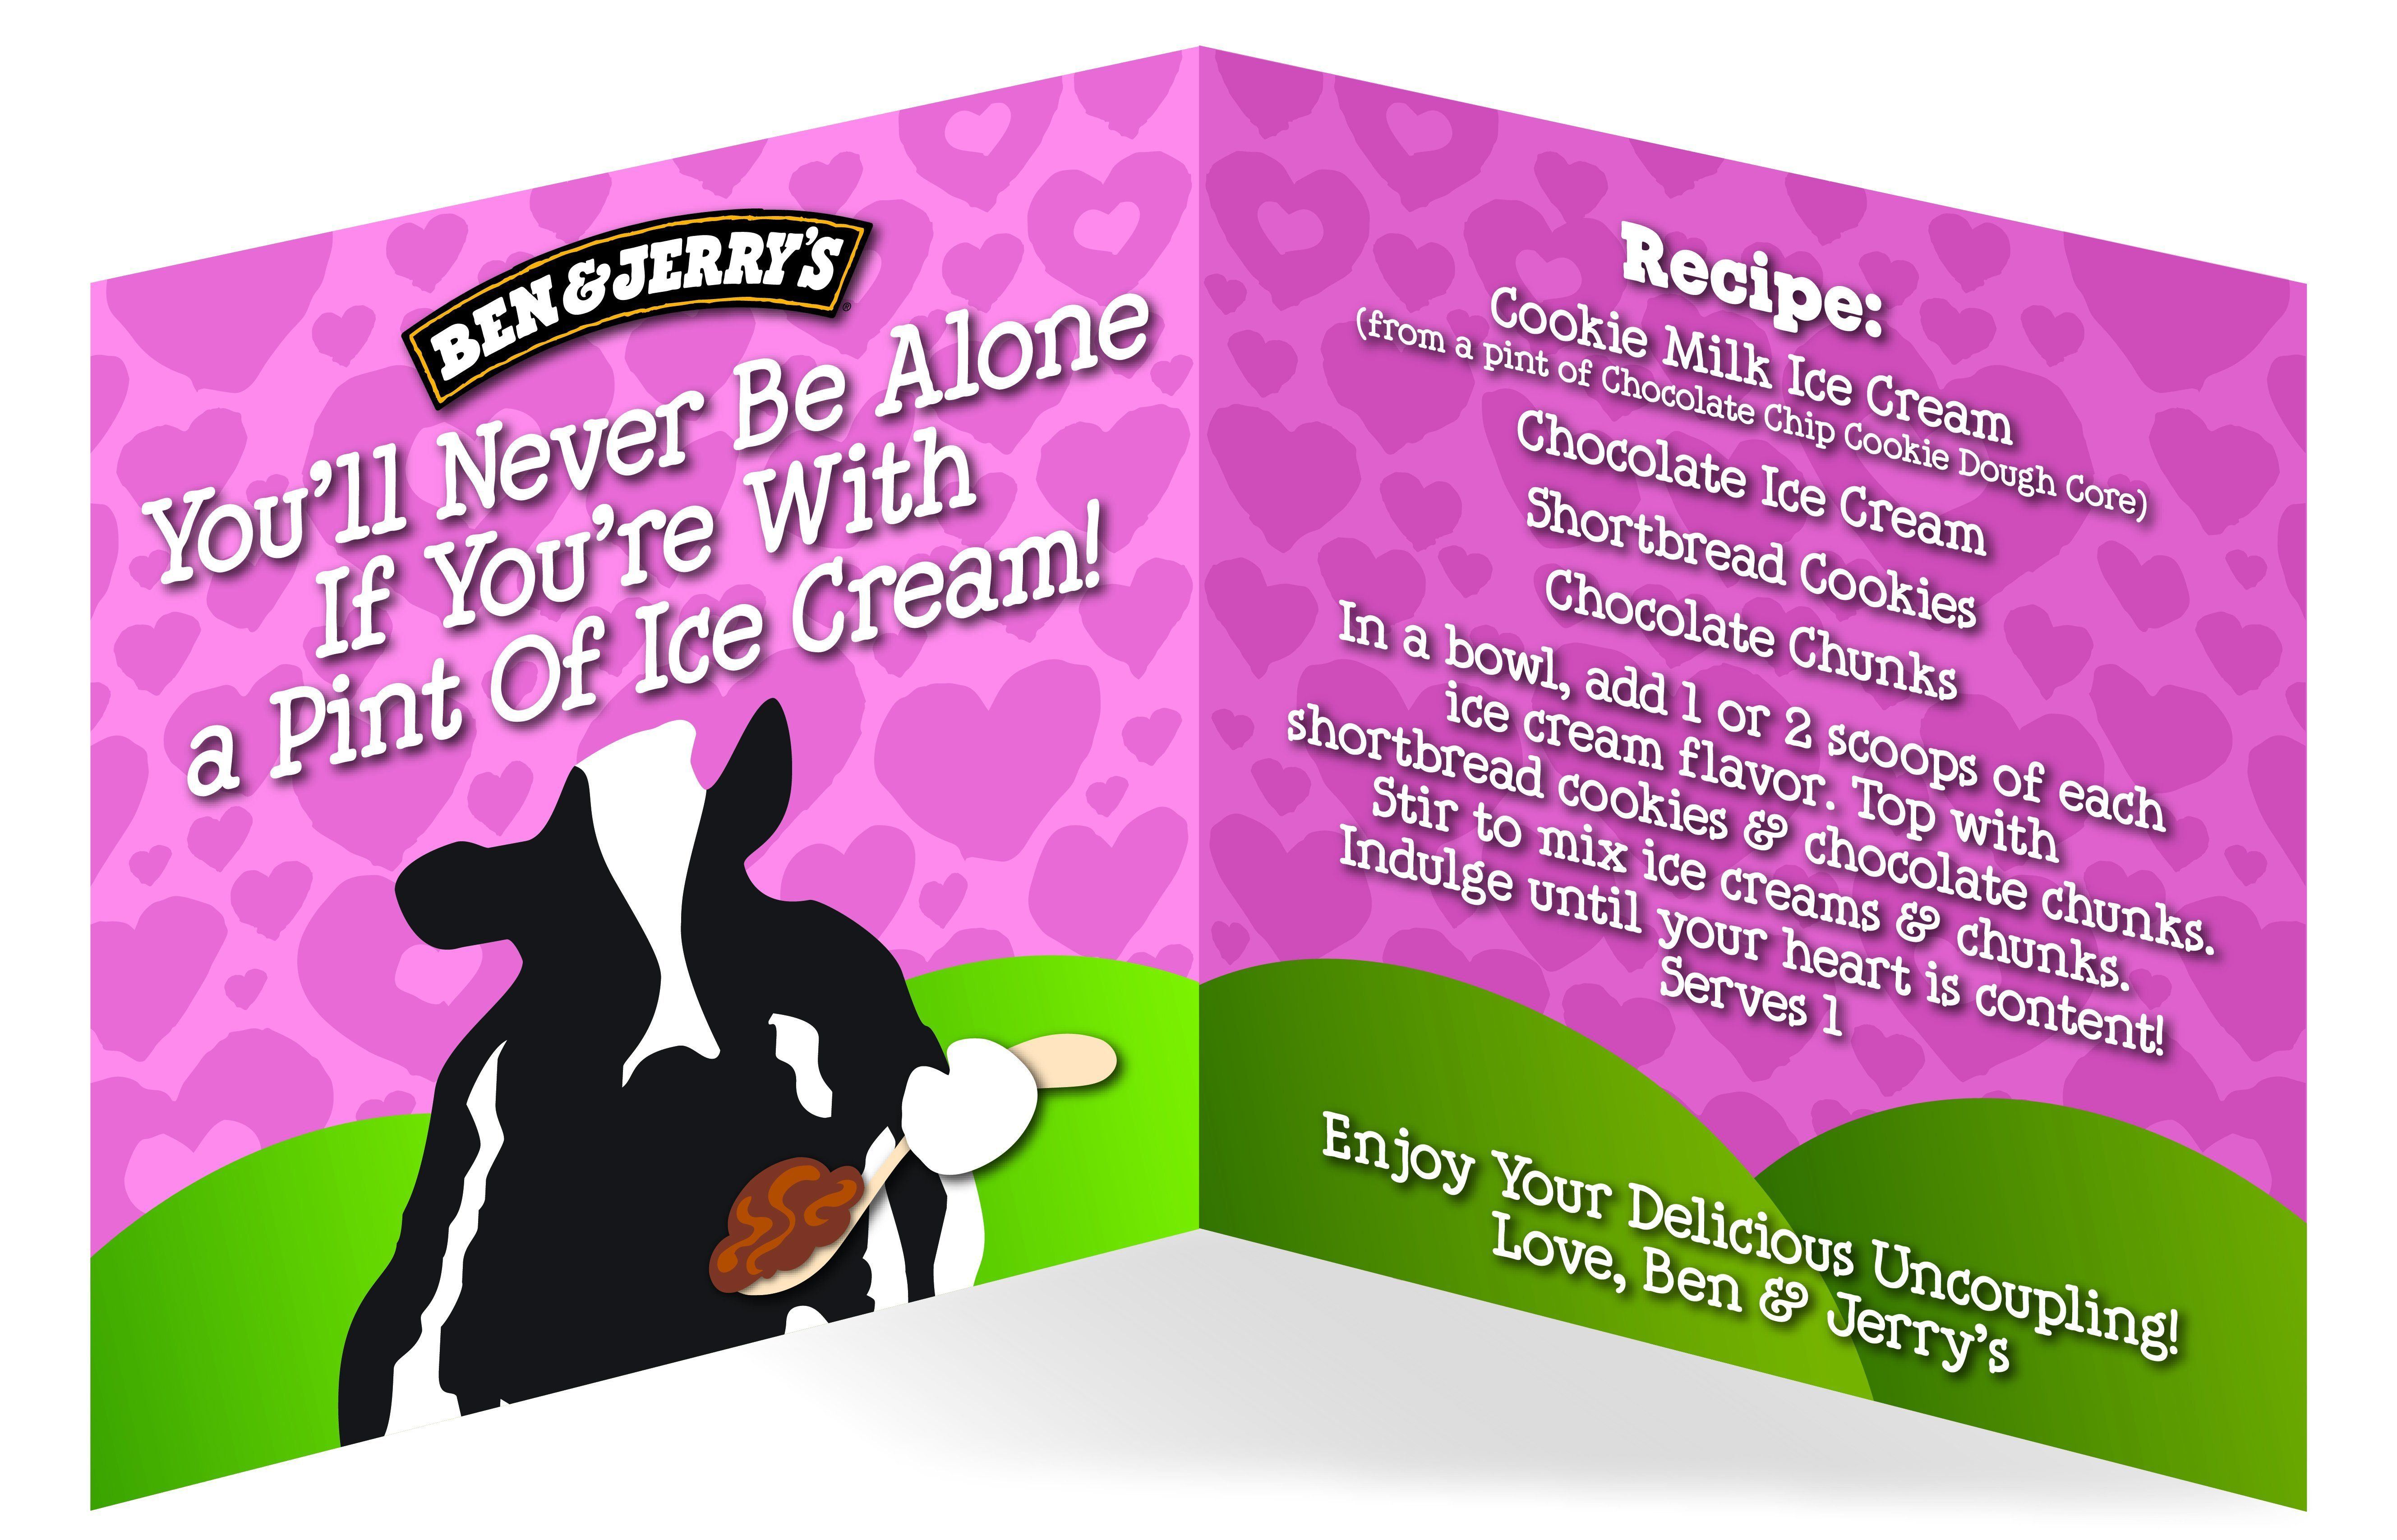 Ben & Jerry's delicious uncoupling